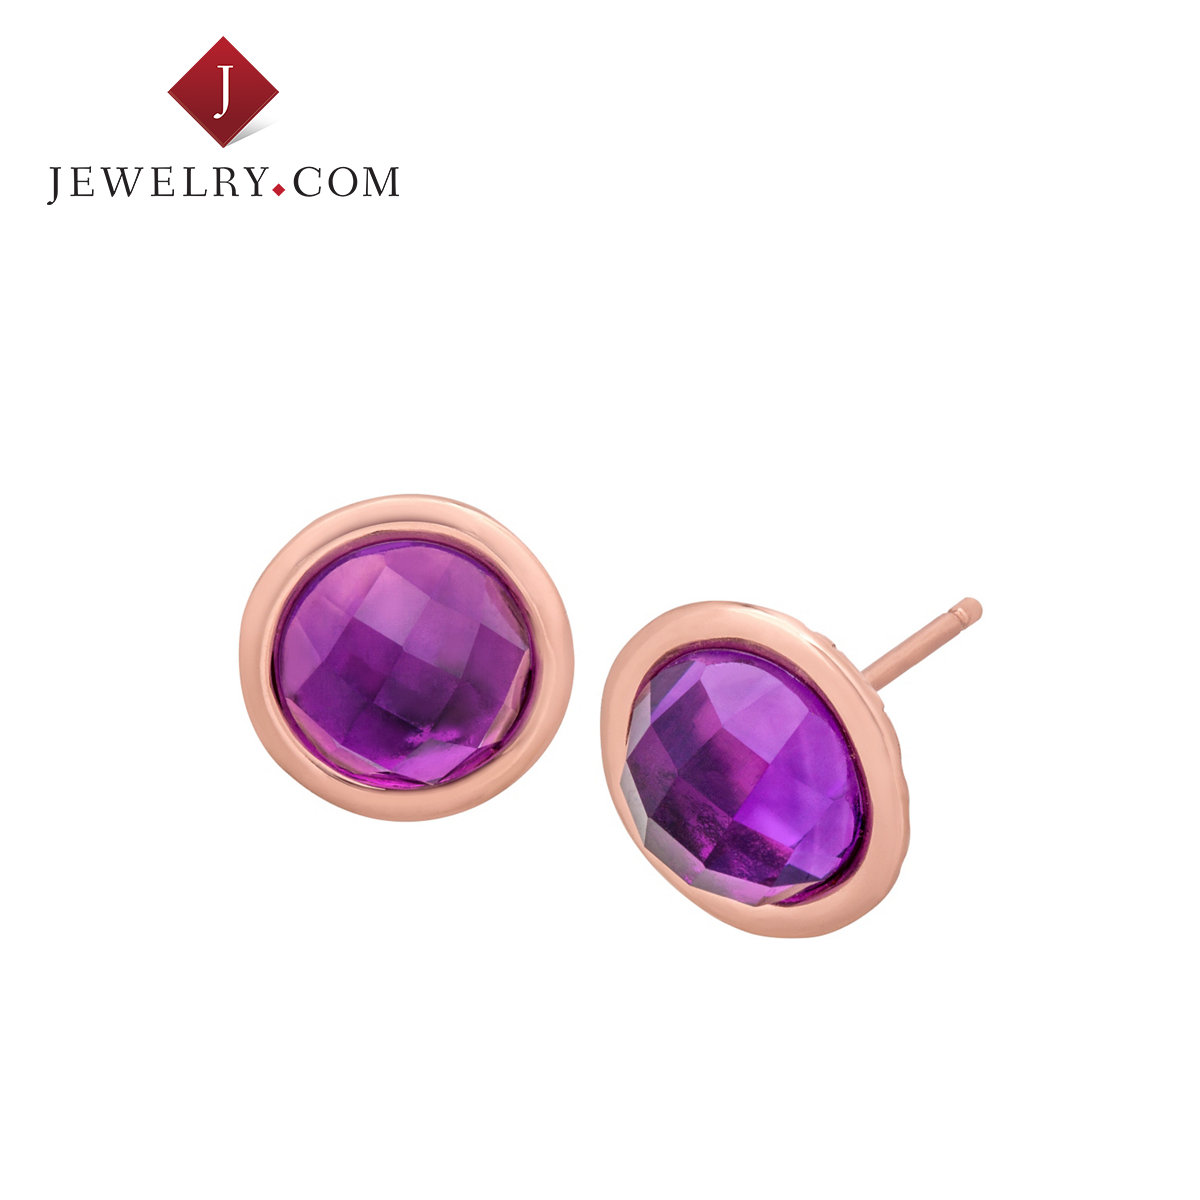 Jewelry.com official cecectomized ms. earrings 75ct k rose gold plated bronze amethyst charm jewelry